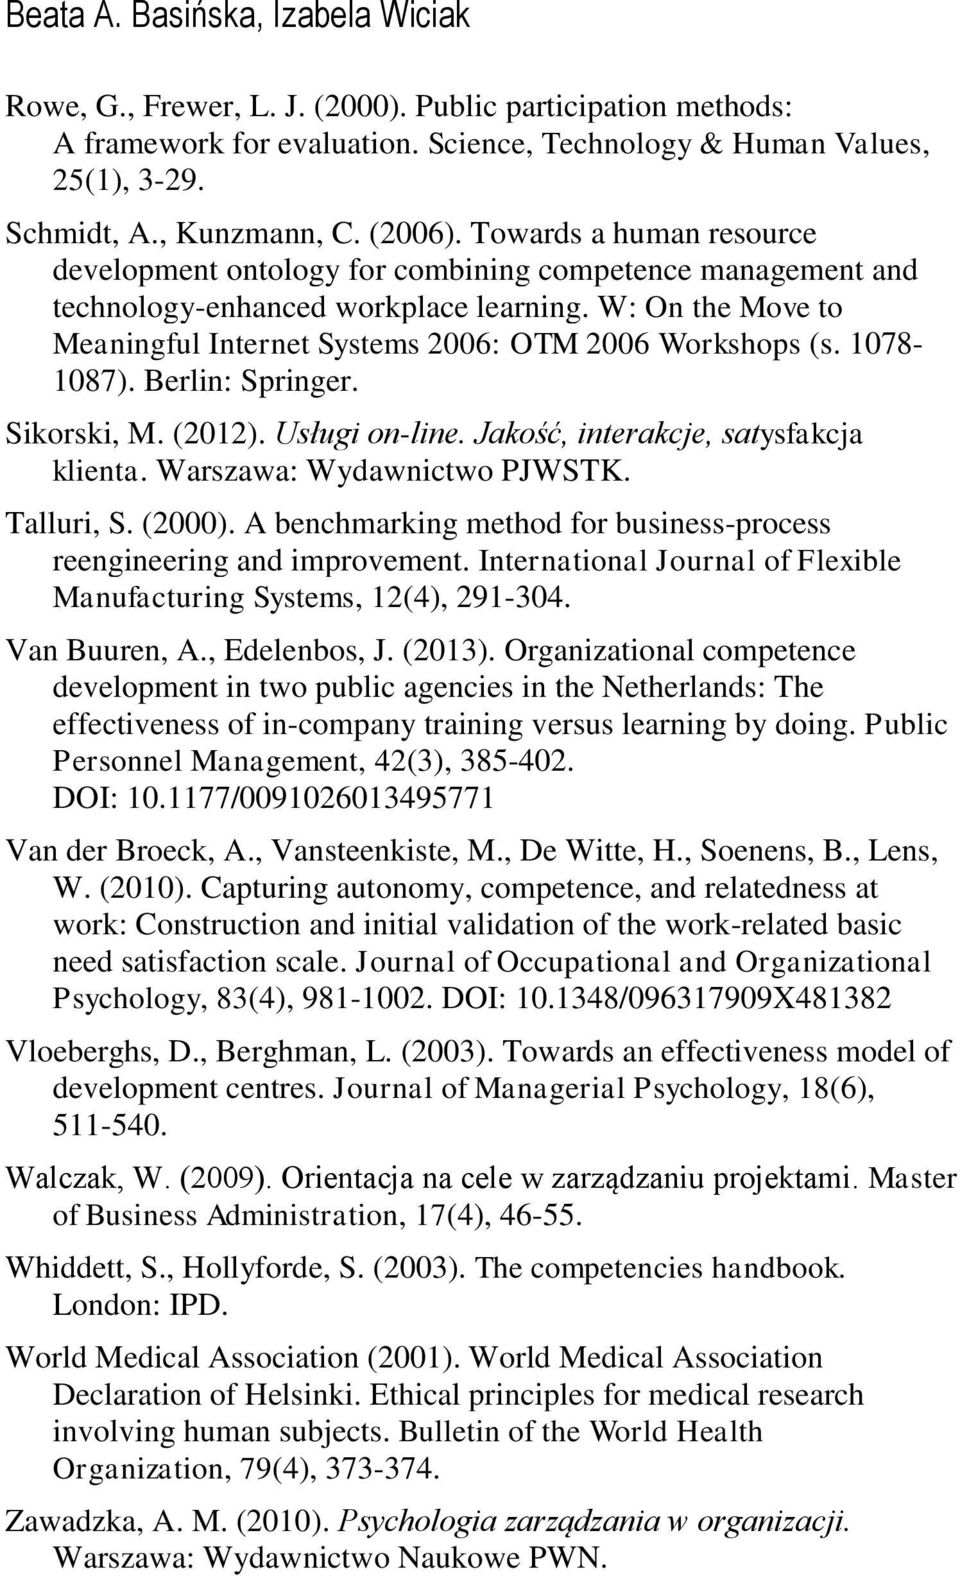 W: On the Move to Meaningful Internet Systems 2006: OTM 2006 Workshops (s. 1078-1087). Berlin: Springer. Sikorski, M. (2012). Usługi on-line. Jakość, interakcje, satysfakcja klienta.